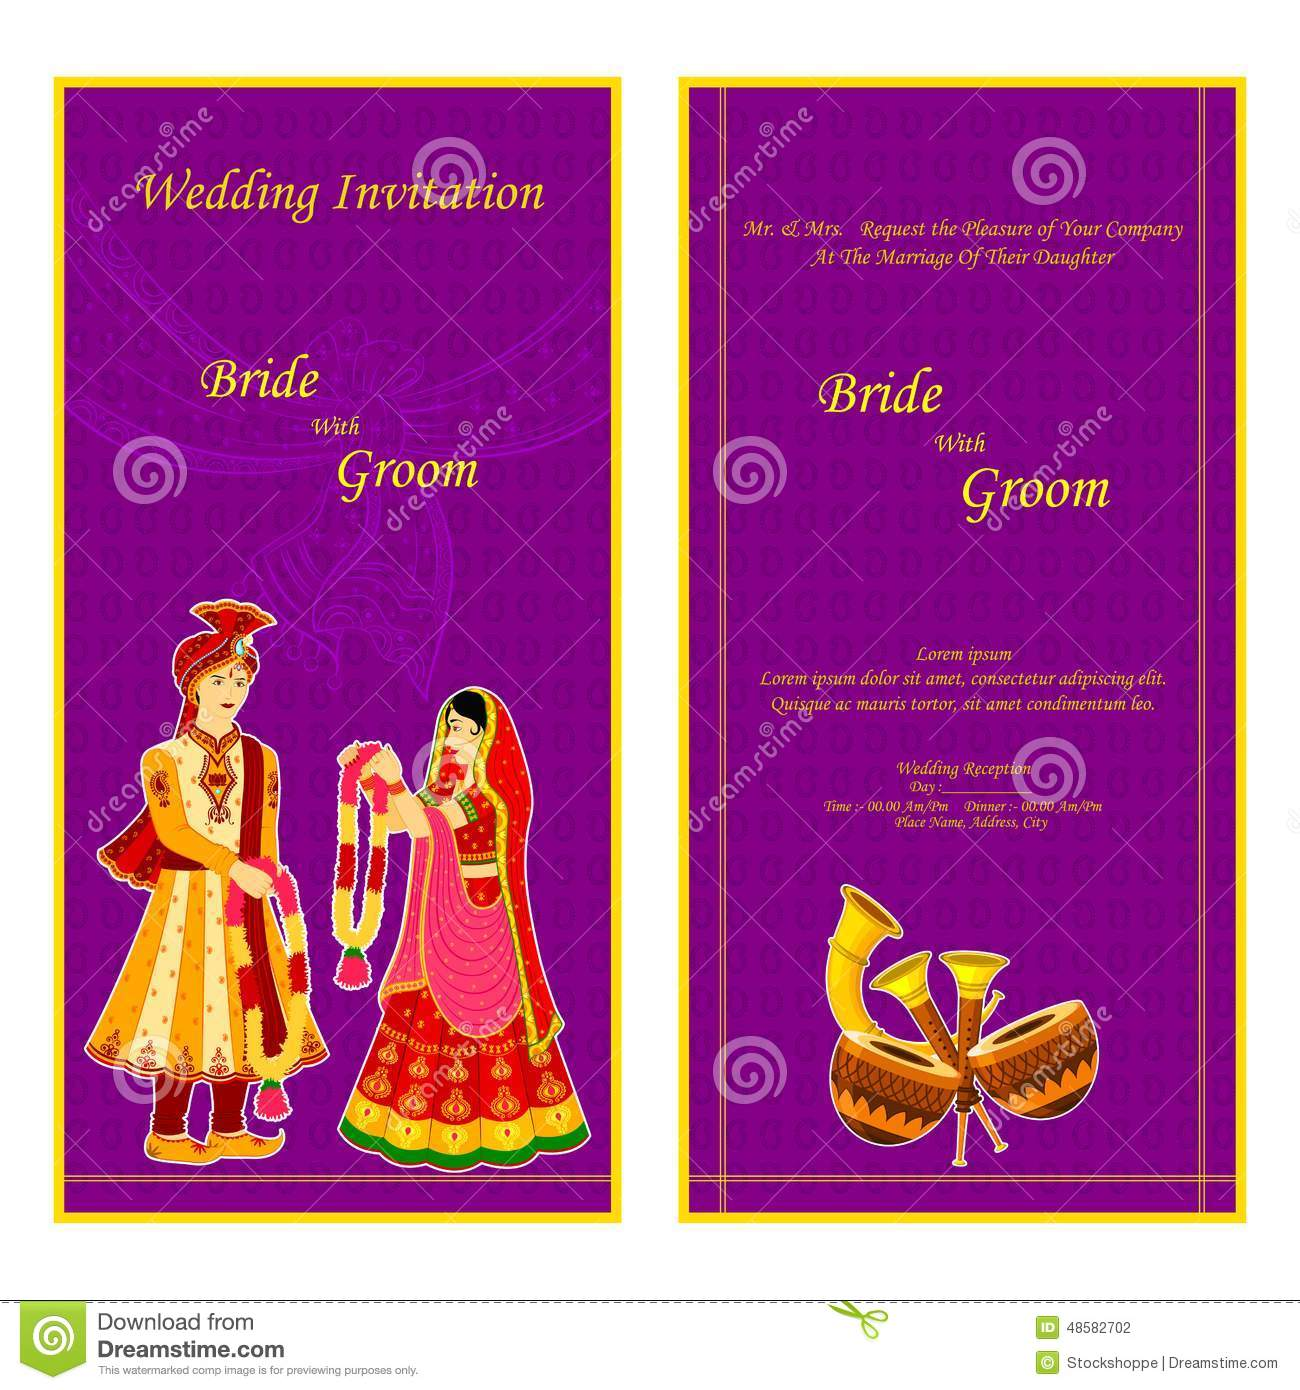 Formats Of Wedding Invitation Cards Ideal Vistalist Co Card Format